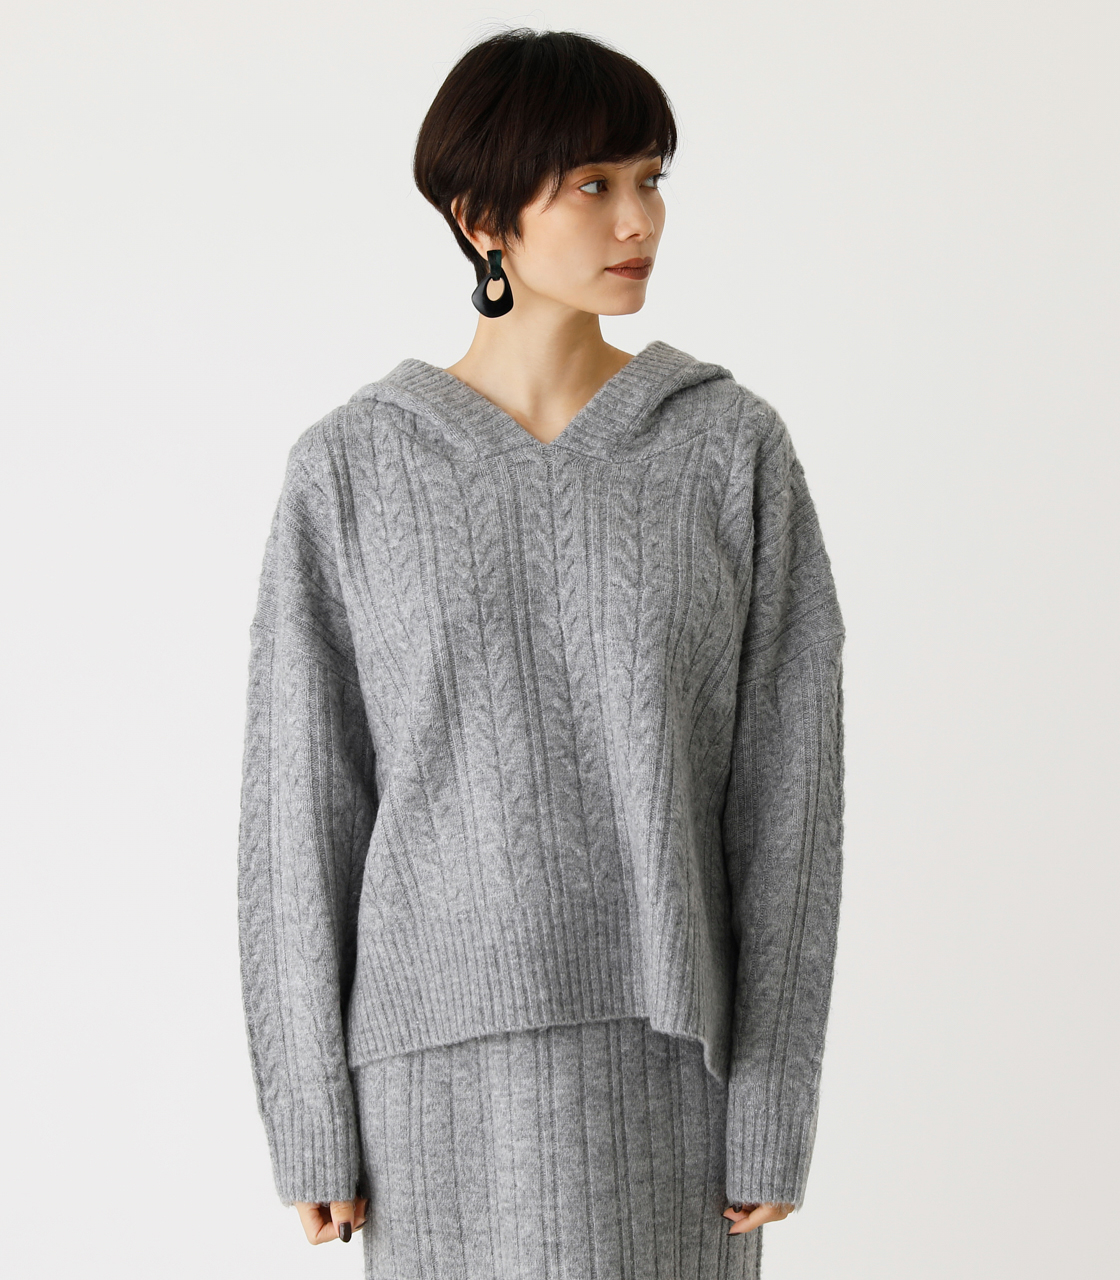 CABLE KNIT HOODIE/ケーブルニットフーディ 詳細画像 T.GRY 4